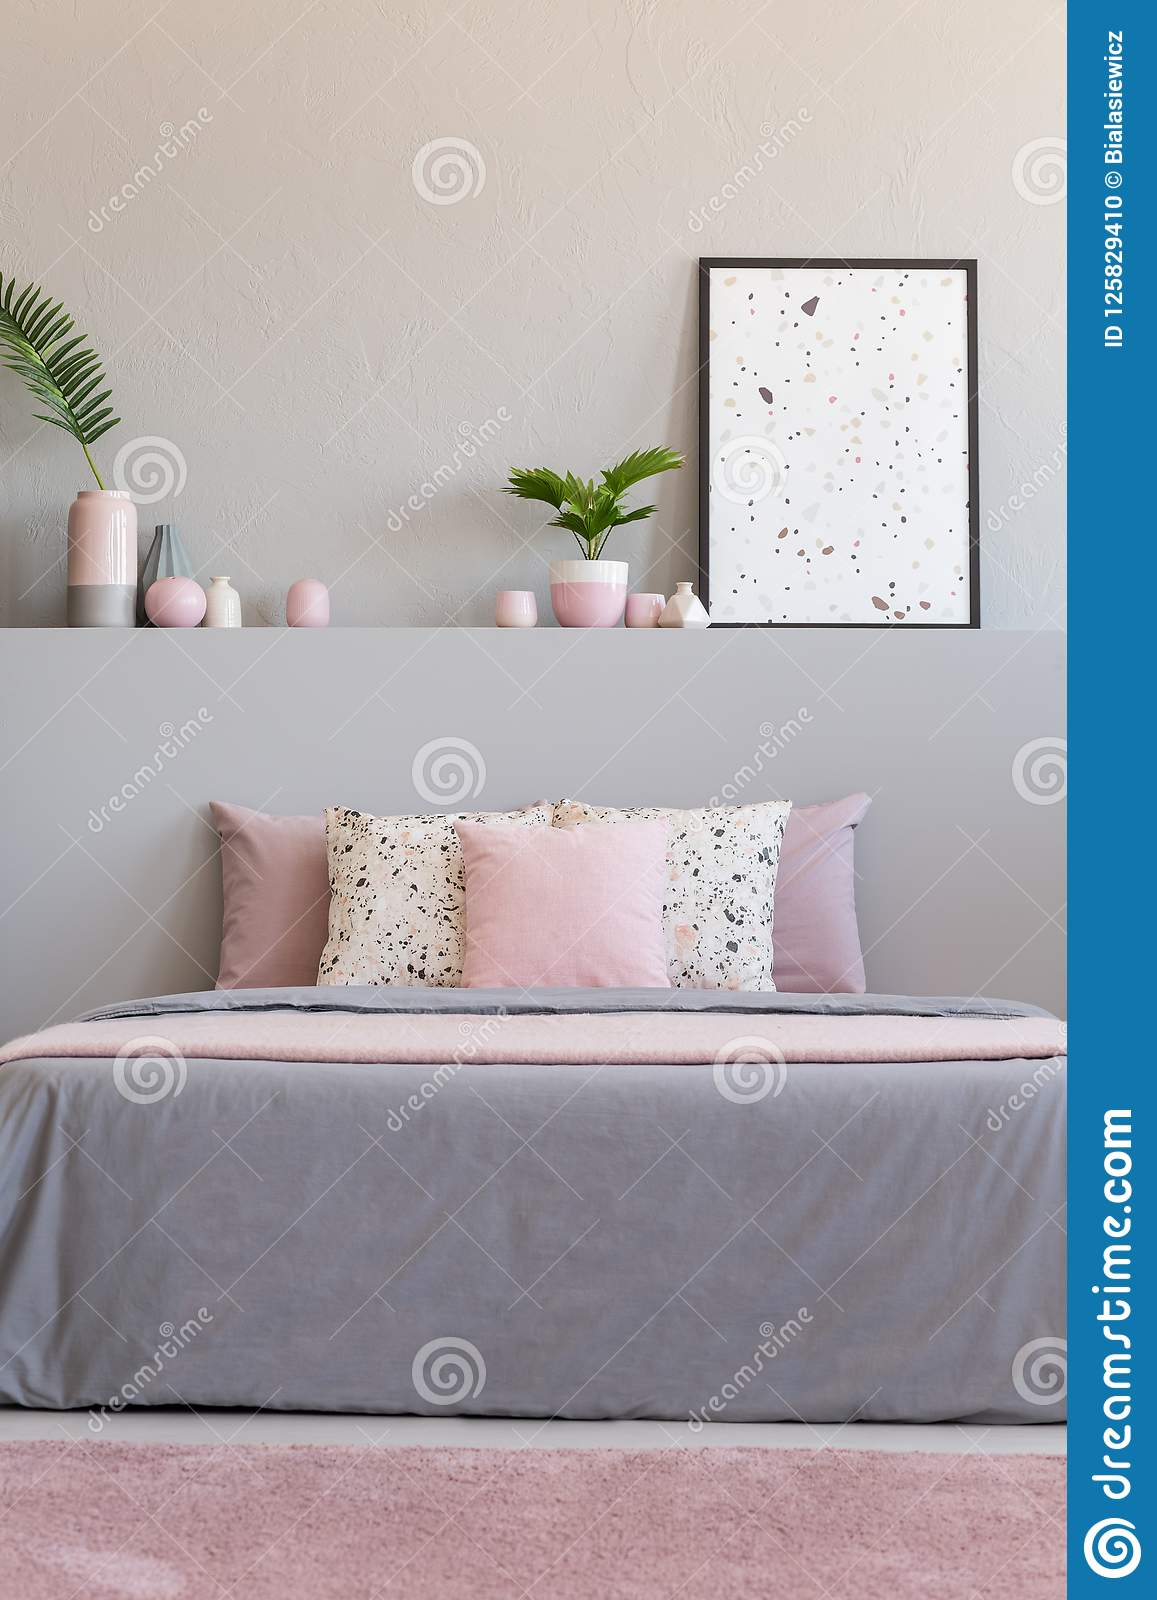 Pink Carpet In Front Of Grey Bed With Cushions In Bedroom ...